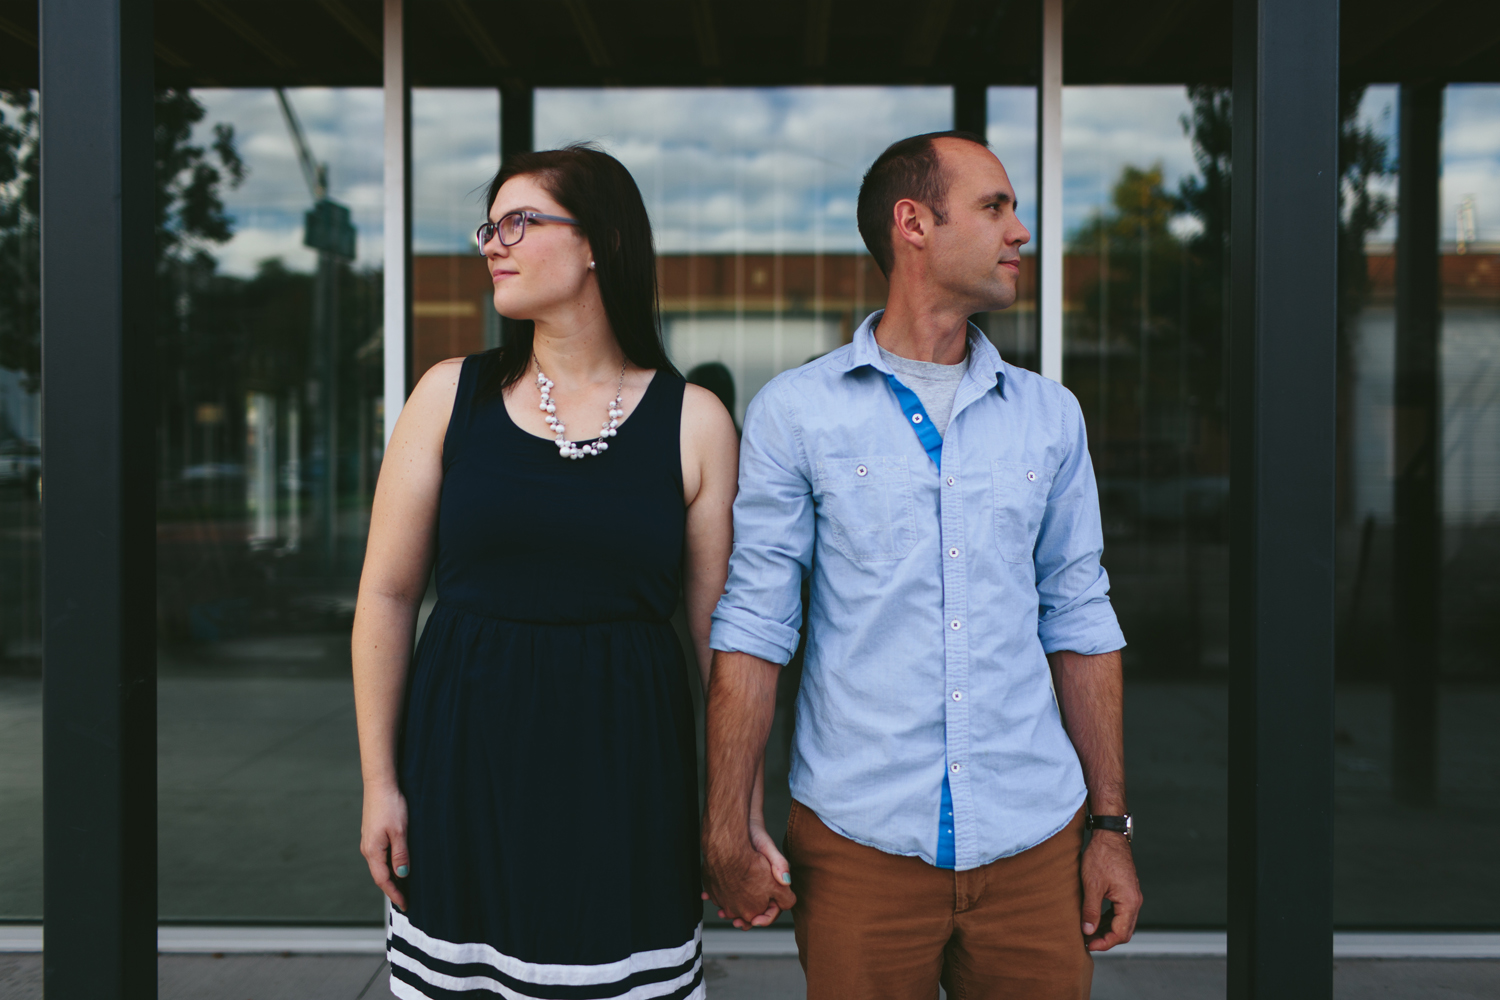 Jillian VanZytveld Photography Denver Colorado Engagement Portraits 53.jpg